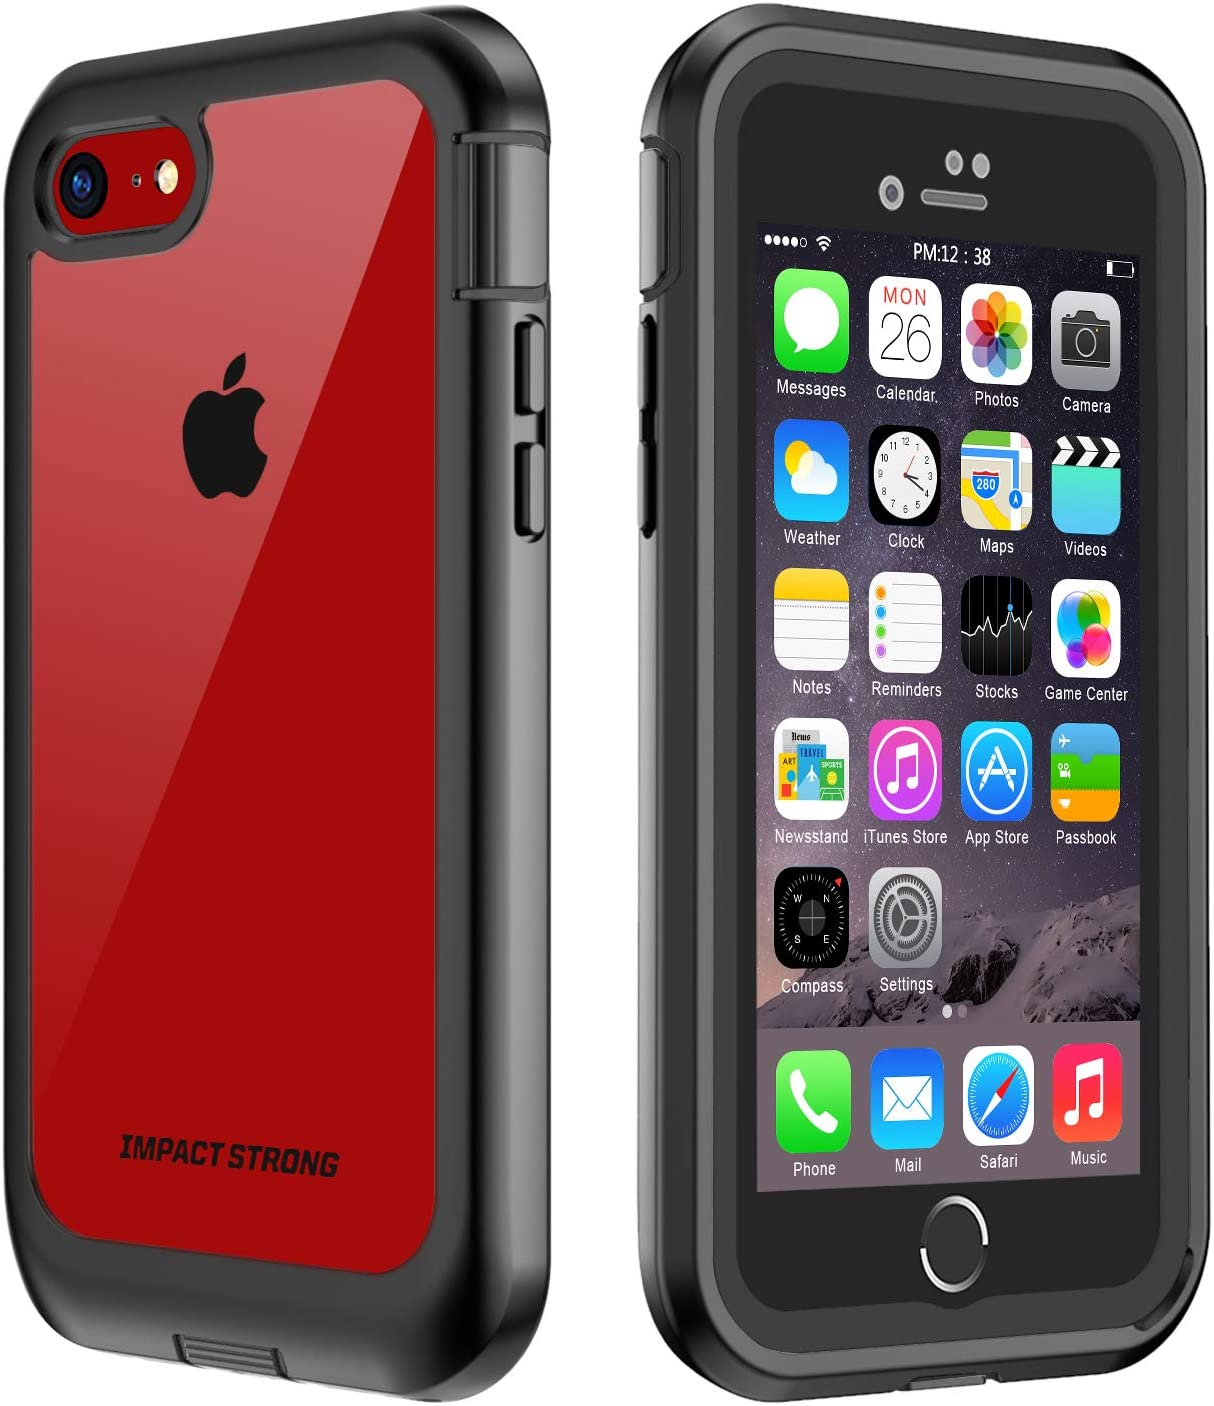 ImpactStrong iPhone 7/8 Clear Case, Ultra Protective Transparent Cover with Built-in Screen Protector Full Body Transparent Clear Cover for iPhone 7 2016 /iPhone 8 2017 (Black/Clear)